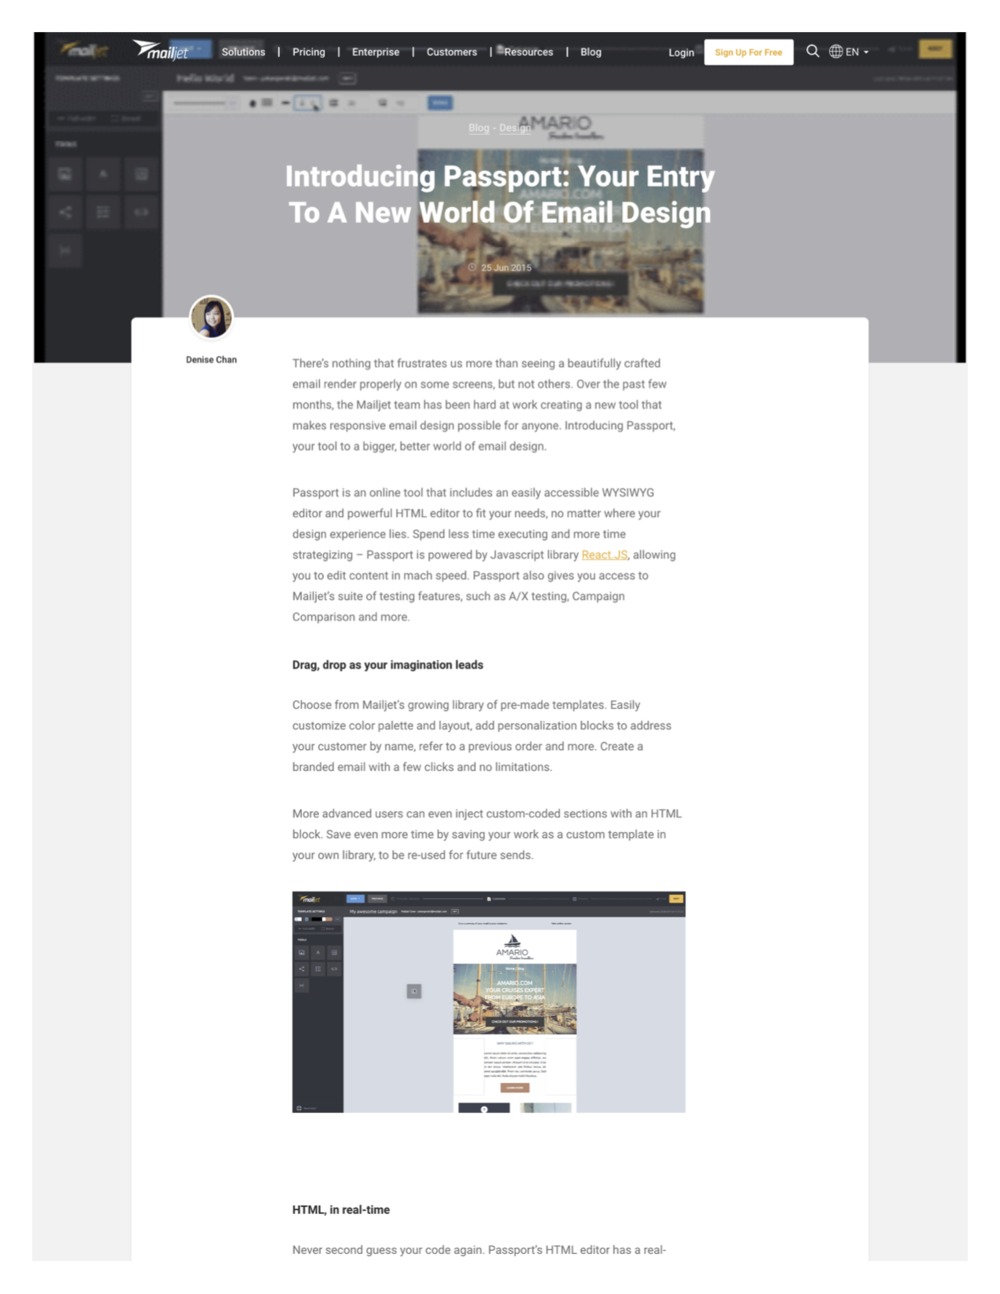 screencapture-mailjet-blog-news-introducing-passport-your-entry-to-a-new-world-of-email-design-2018-07-23-14_19_08.png